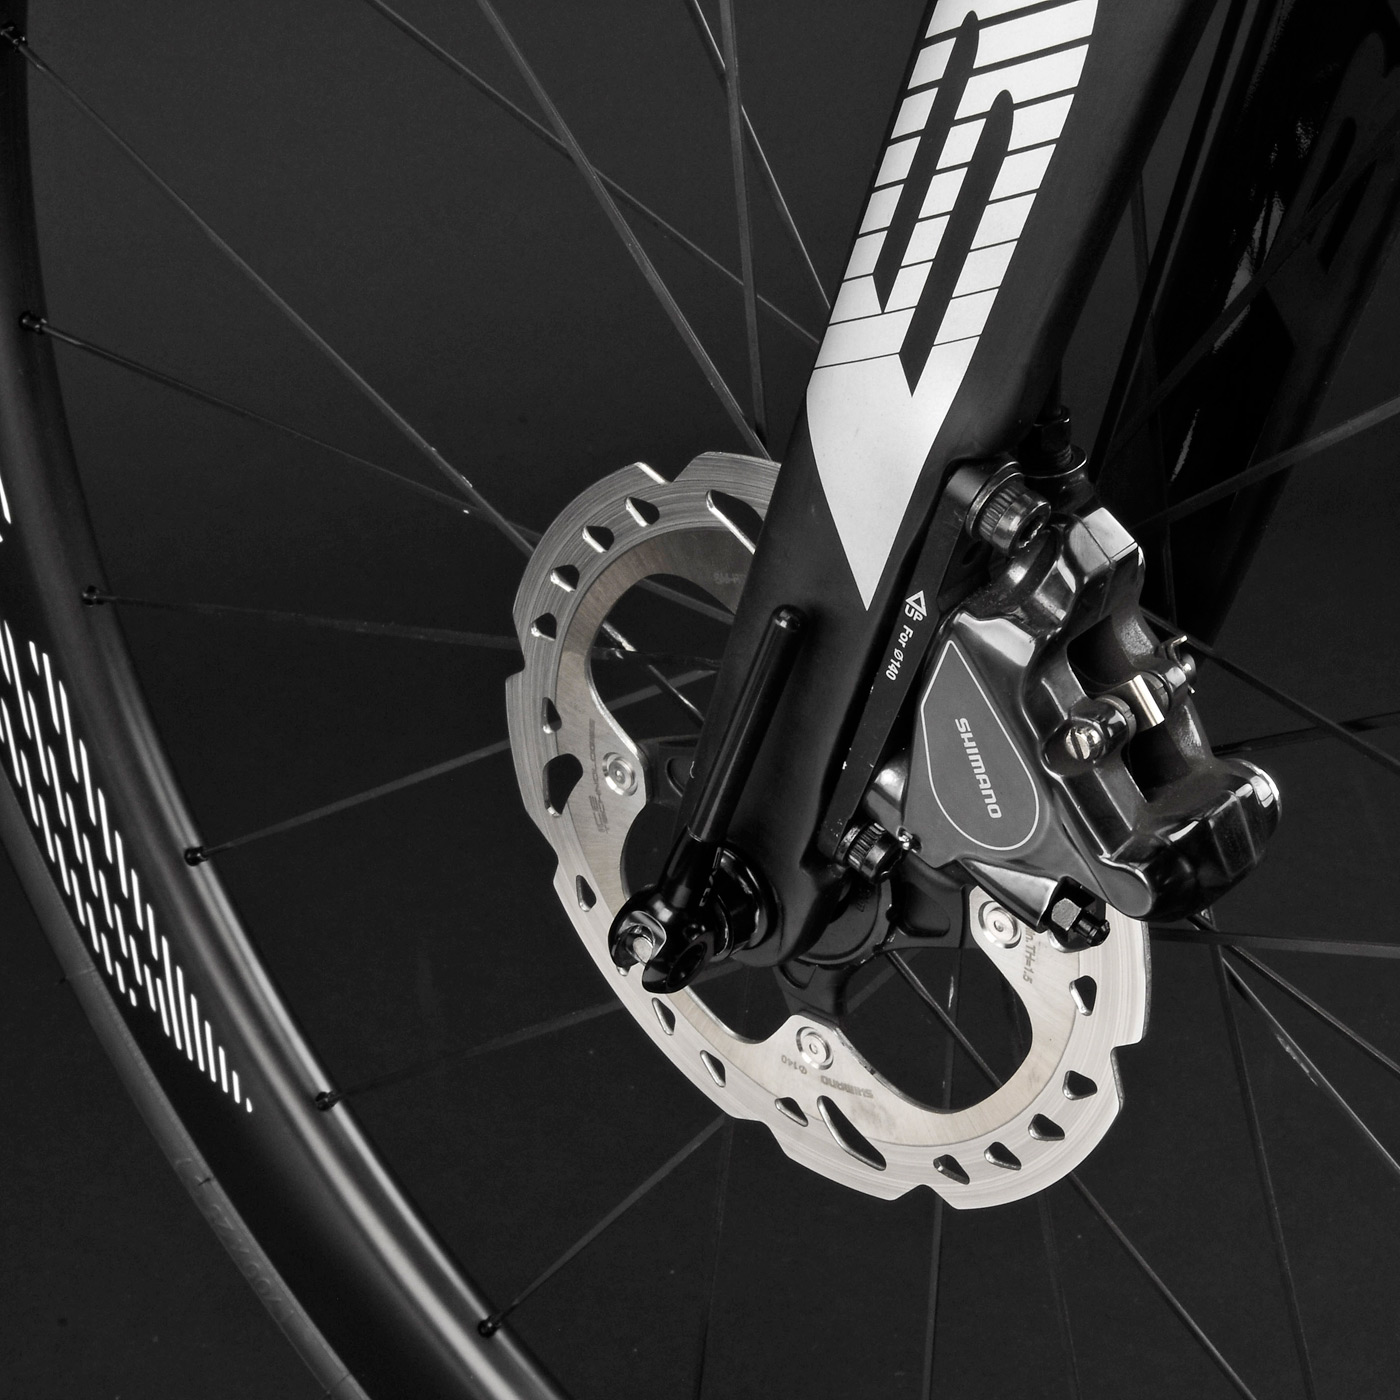 BH-Bikes_G7-Disc_aero_disc-brake_road-bike_fork-brake-detail